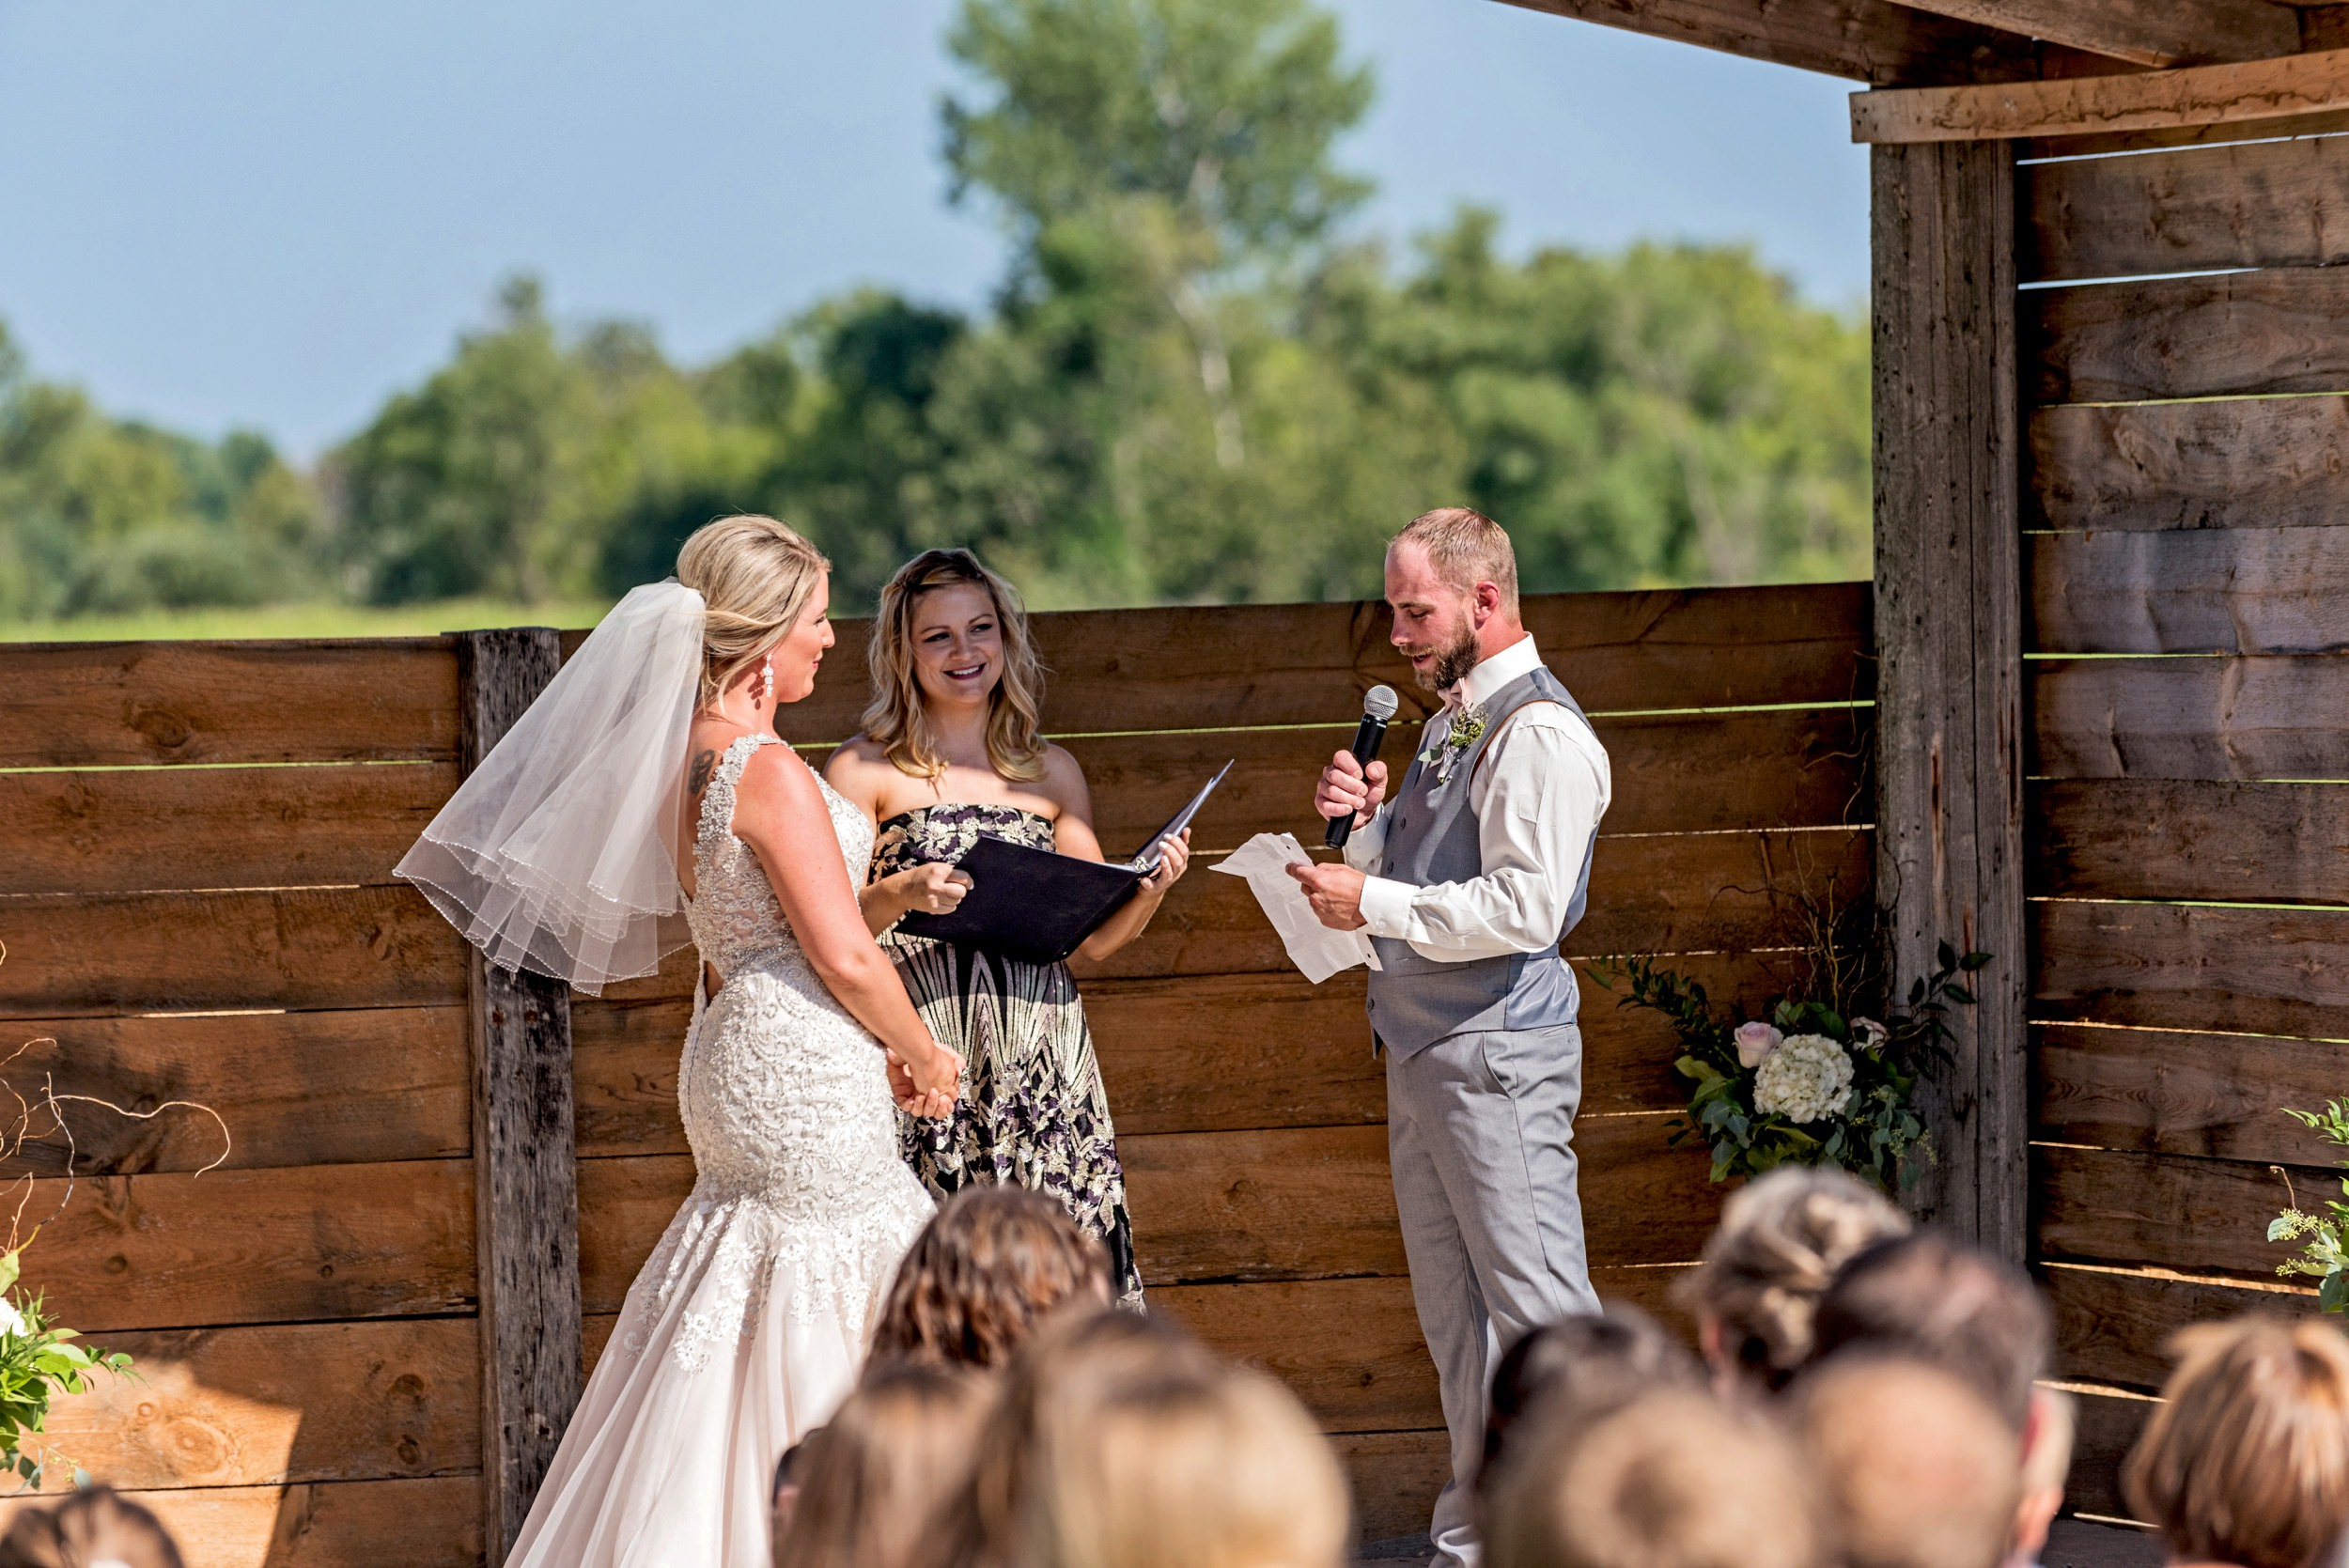 2018-Real-Wedding-Brittany-Chris-Rotella-Photography_0568.jpg